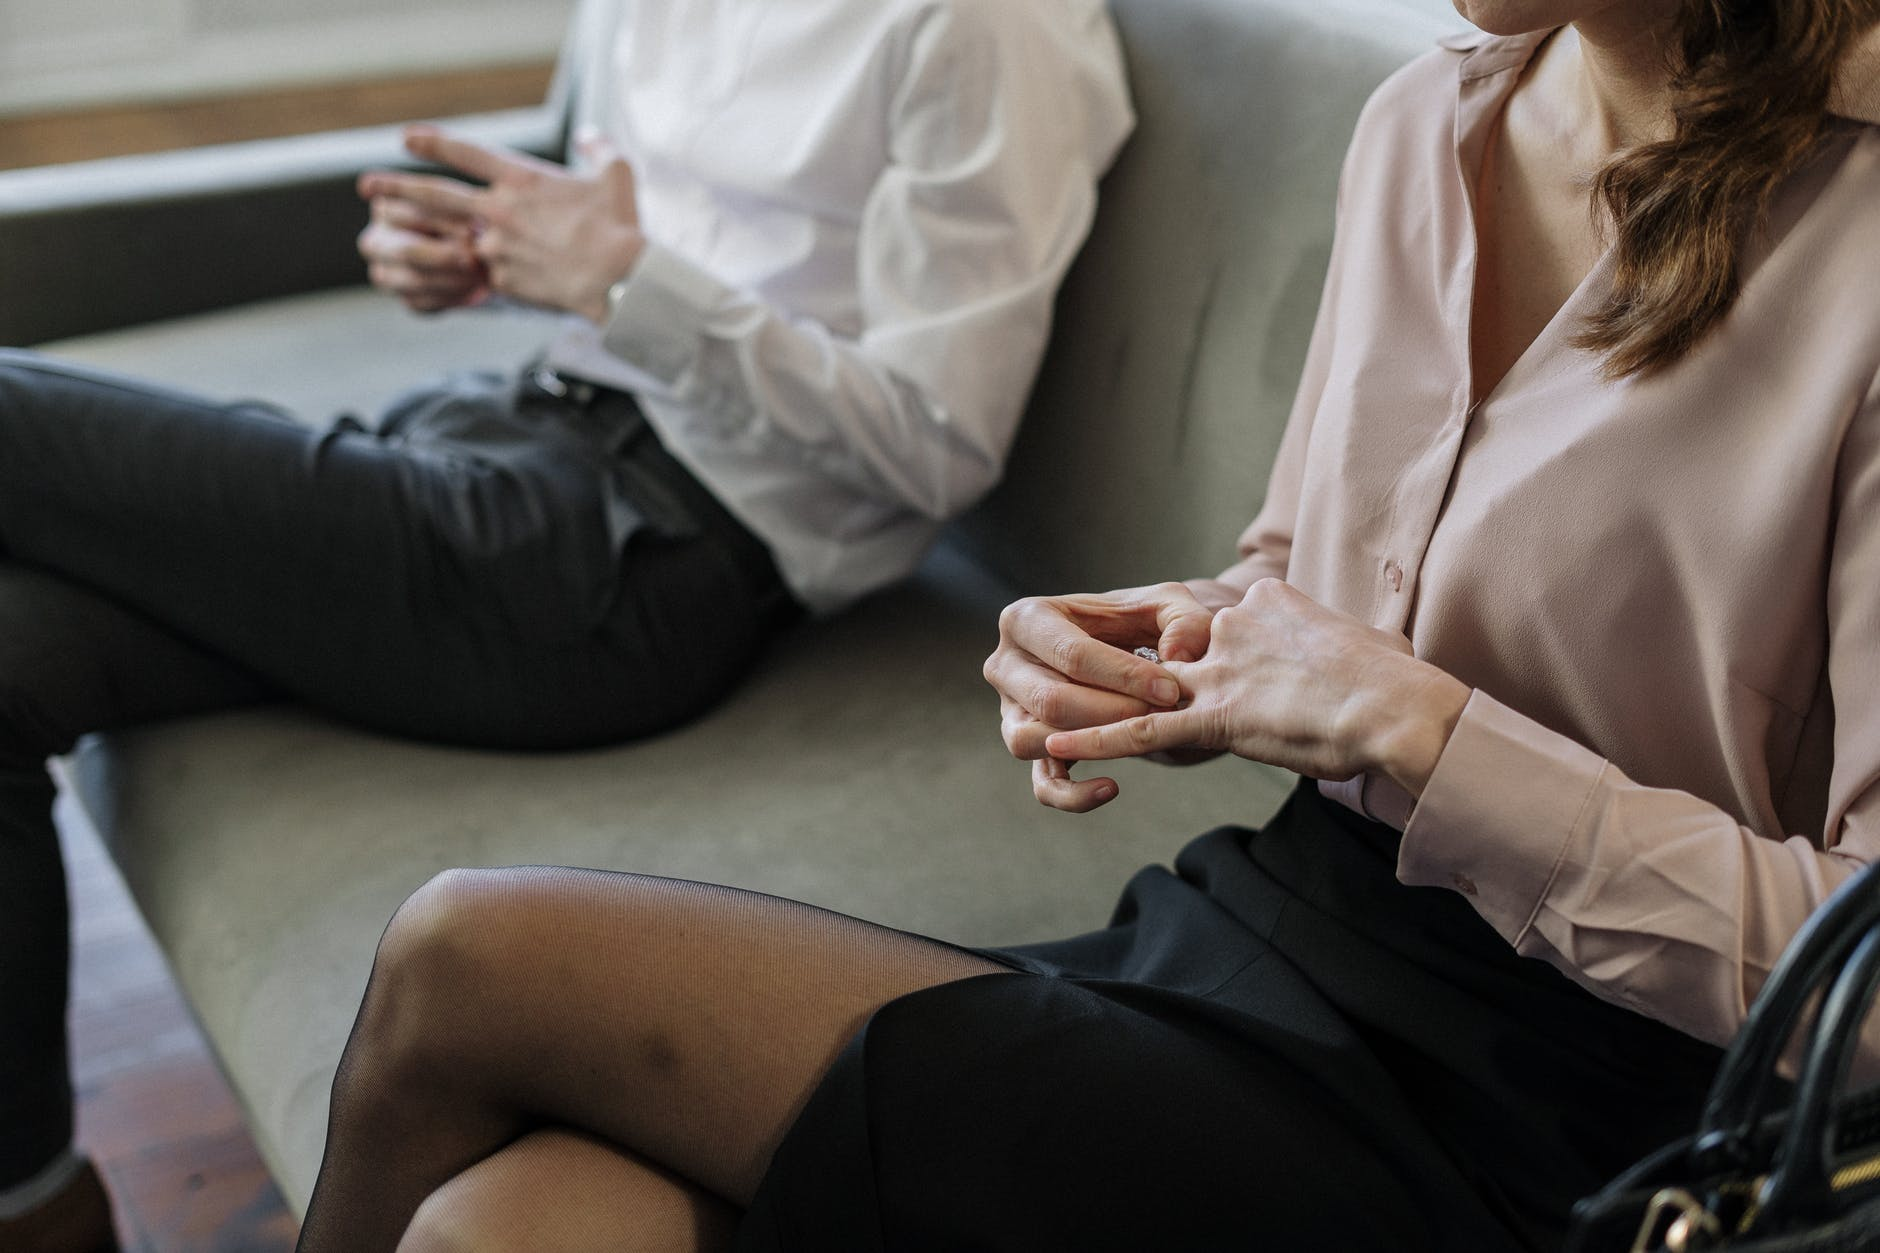 woman in white dress shirt and black skirt sitting on gray couch